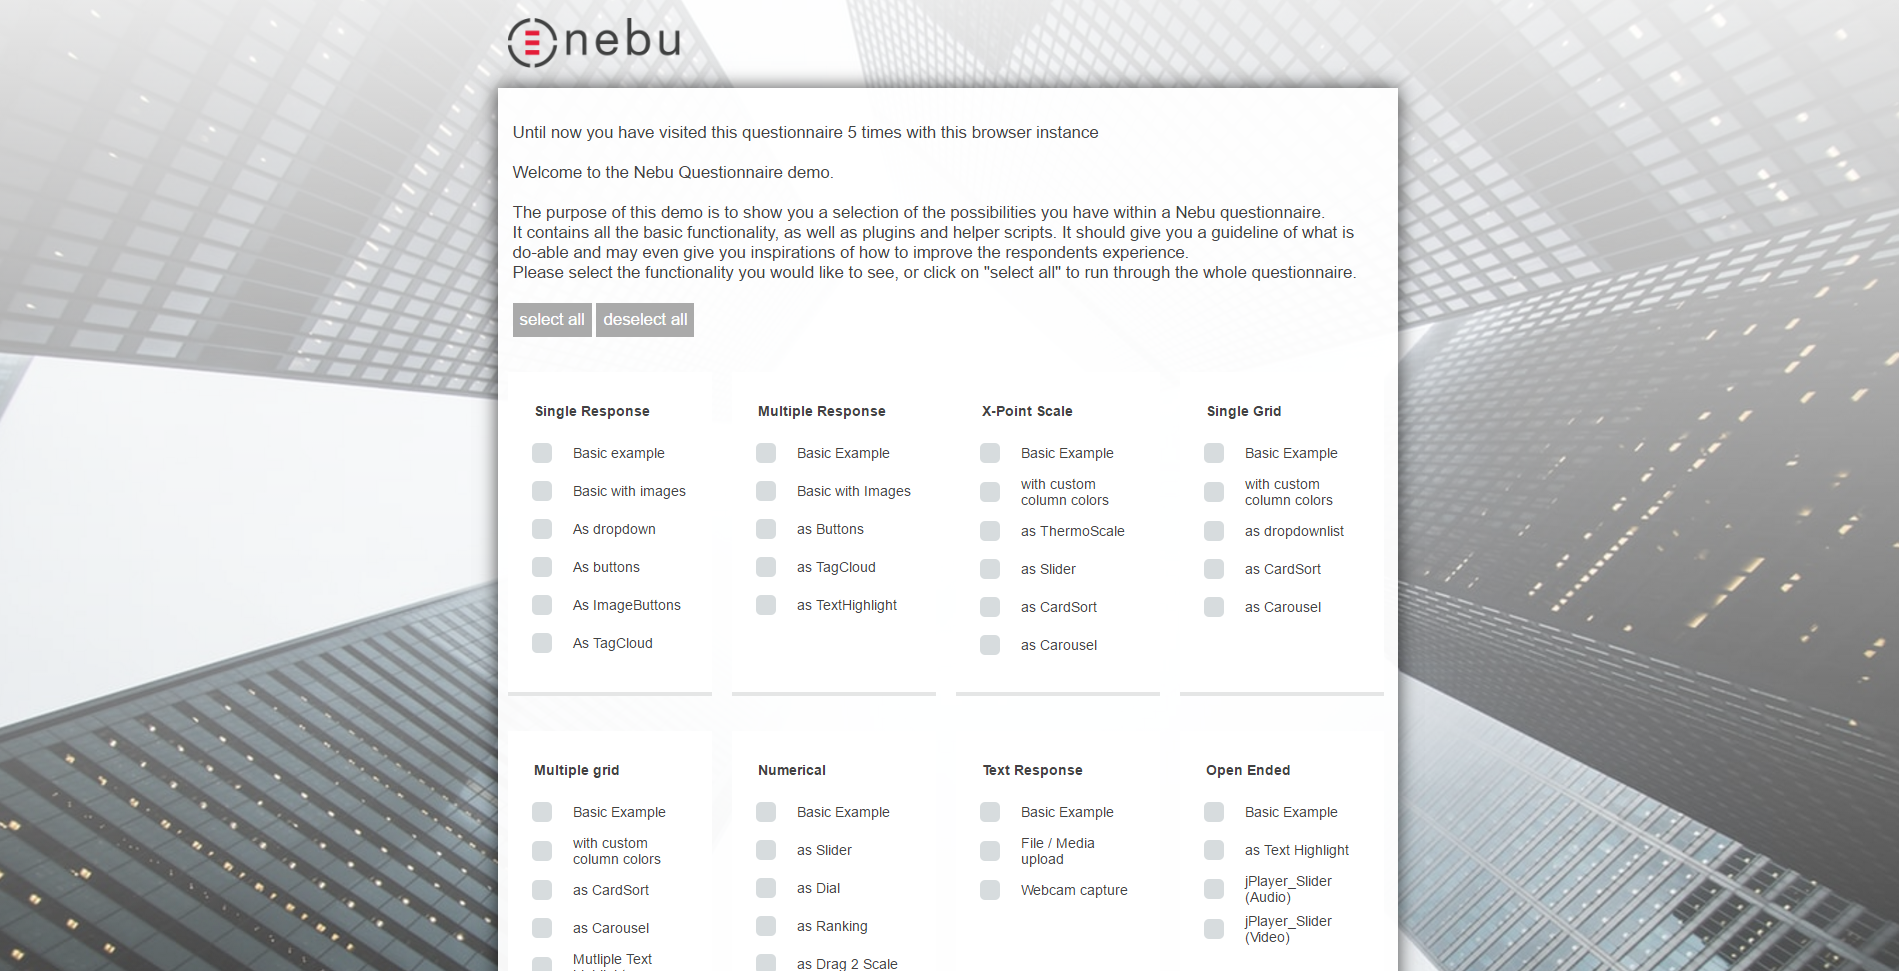 Experience the possibilities of a Nebu Questionnaire